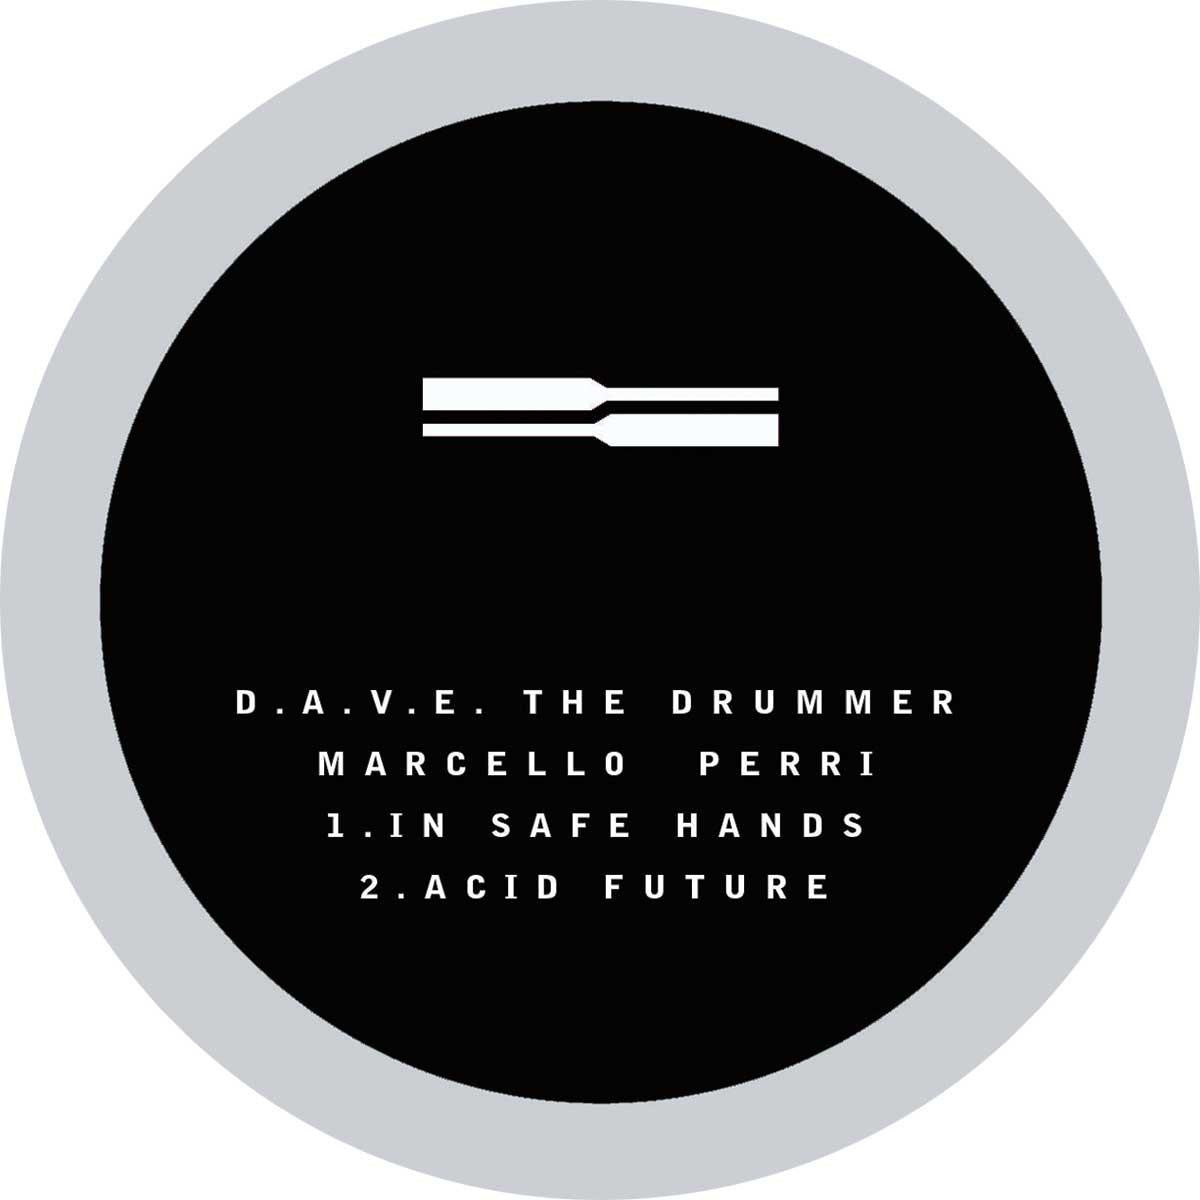 "D.A.V.E. the Drummer & Marcello Perri - In Safe Hands / Acid Future [180g 12"" Vinyl] , Vinyl - Hydraulix, Unearthed Sounds"